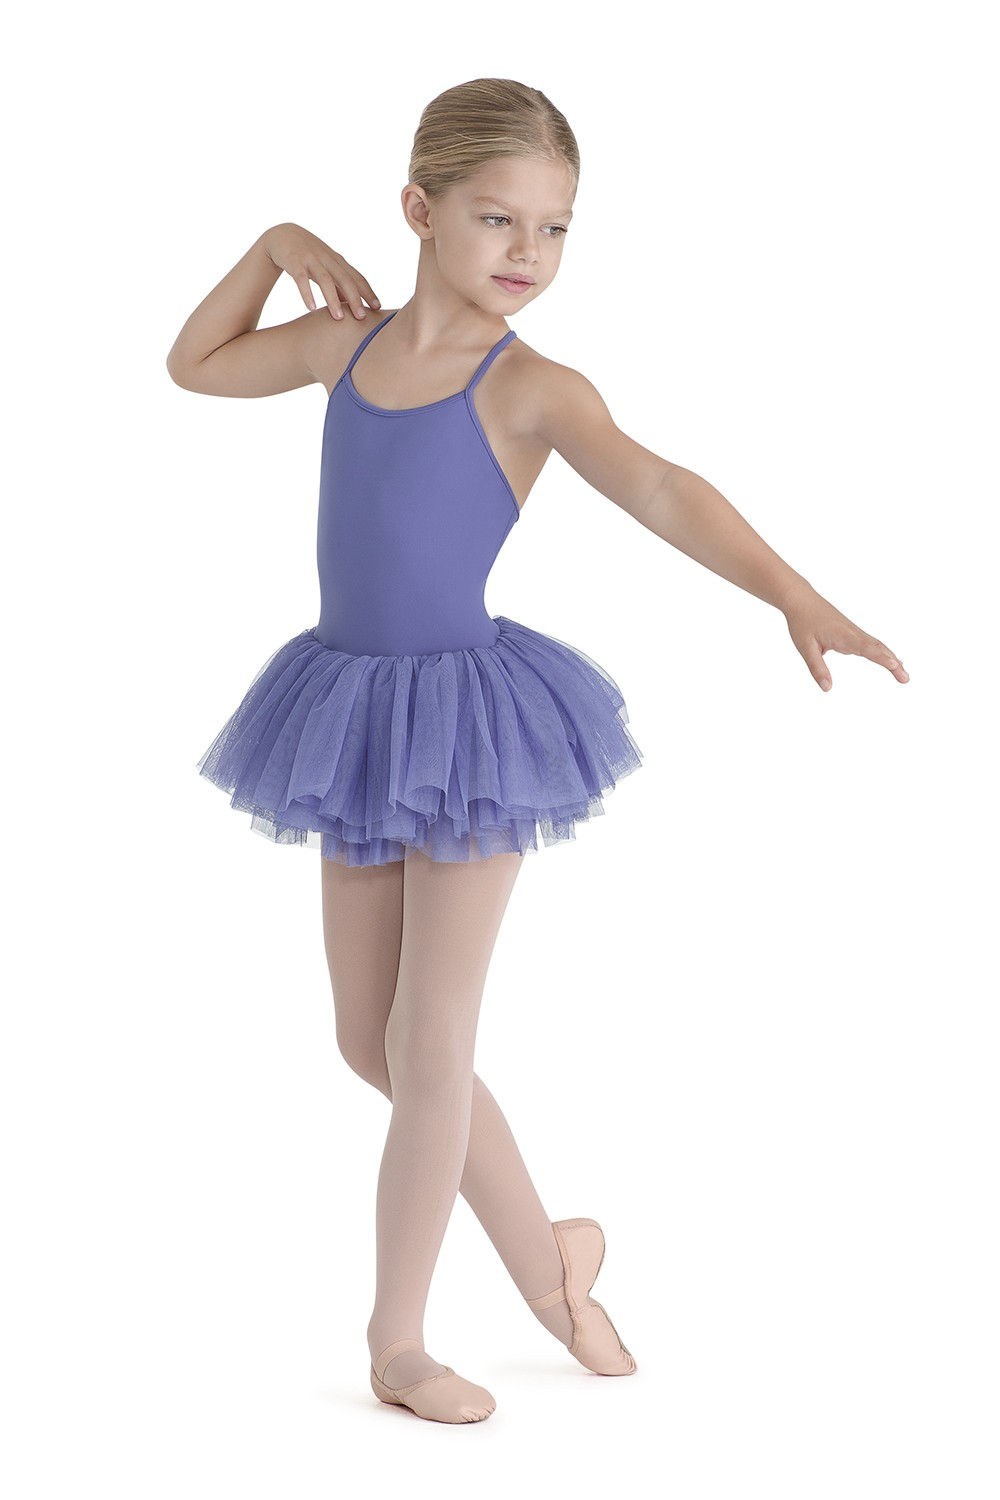 Lattice Trim Tutu Children's Dance Leotards